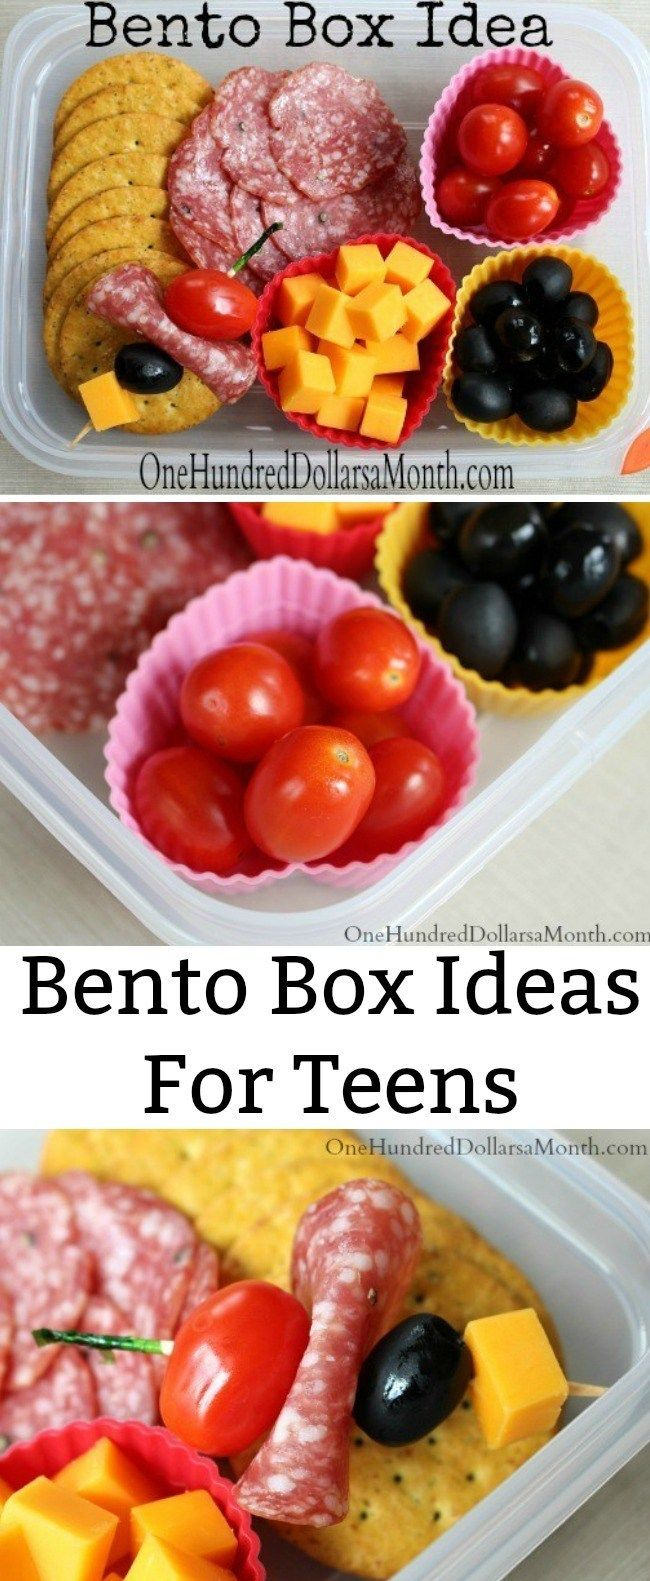 Bento Box Ideas For Teens - Salami, Olives, Cheese, Grape Tomatoes (Antipasto #bentoboxlunch